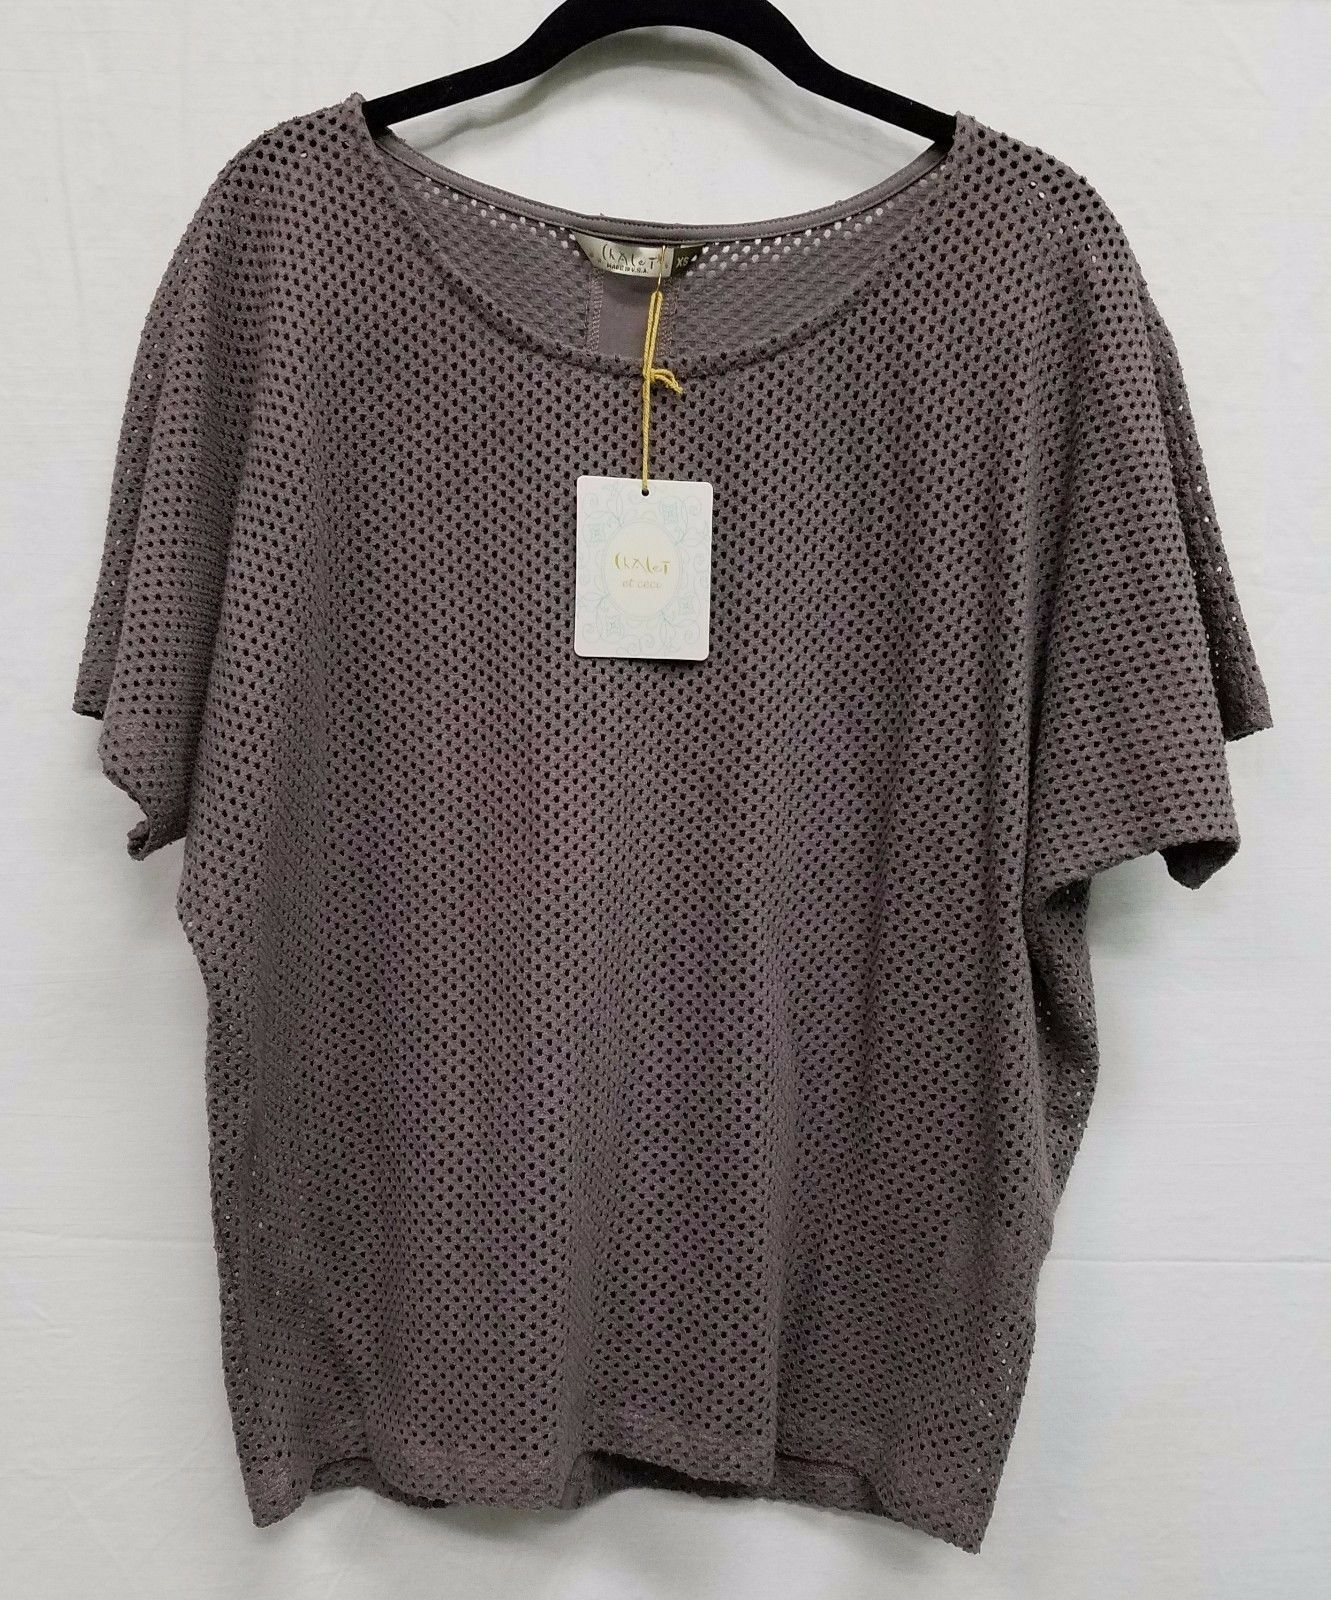 Chalet Eyelet Annisa Top Shirt Bamboo Cotton Knit Style BP72872 NEW with Tags